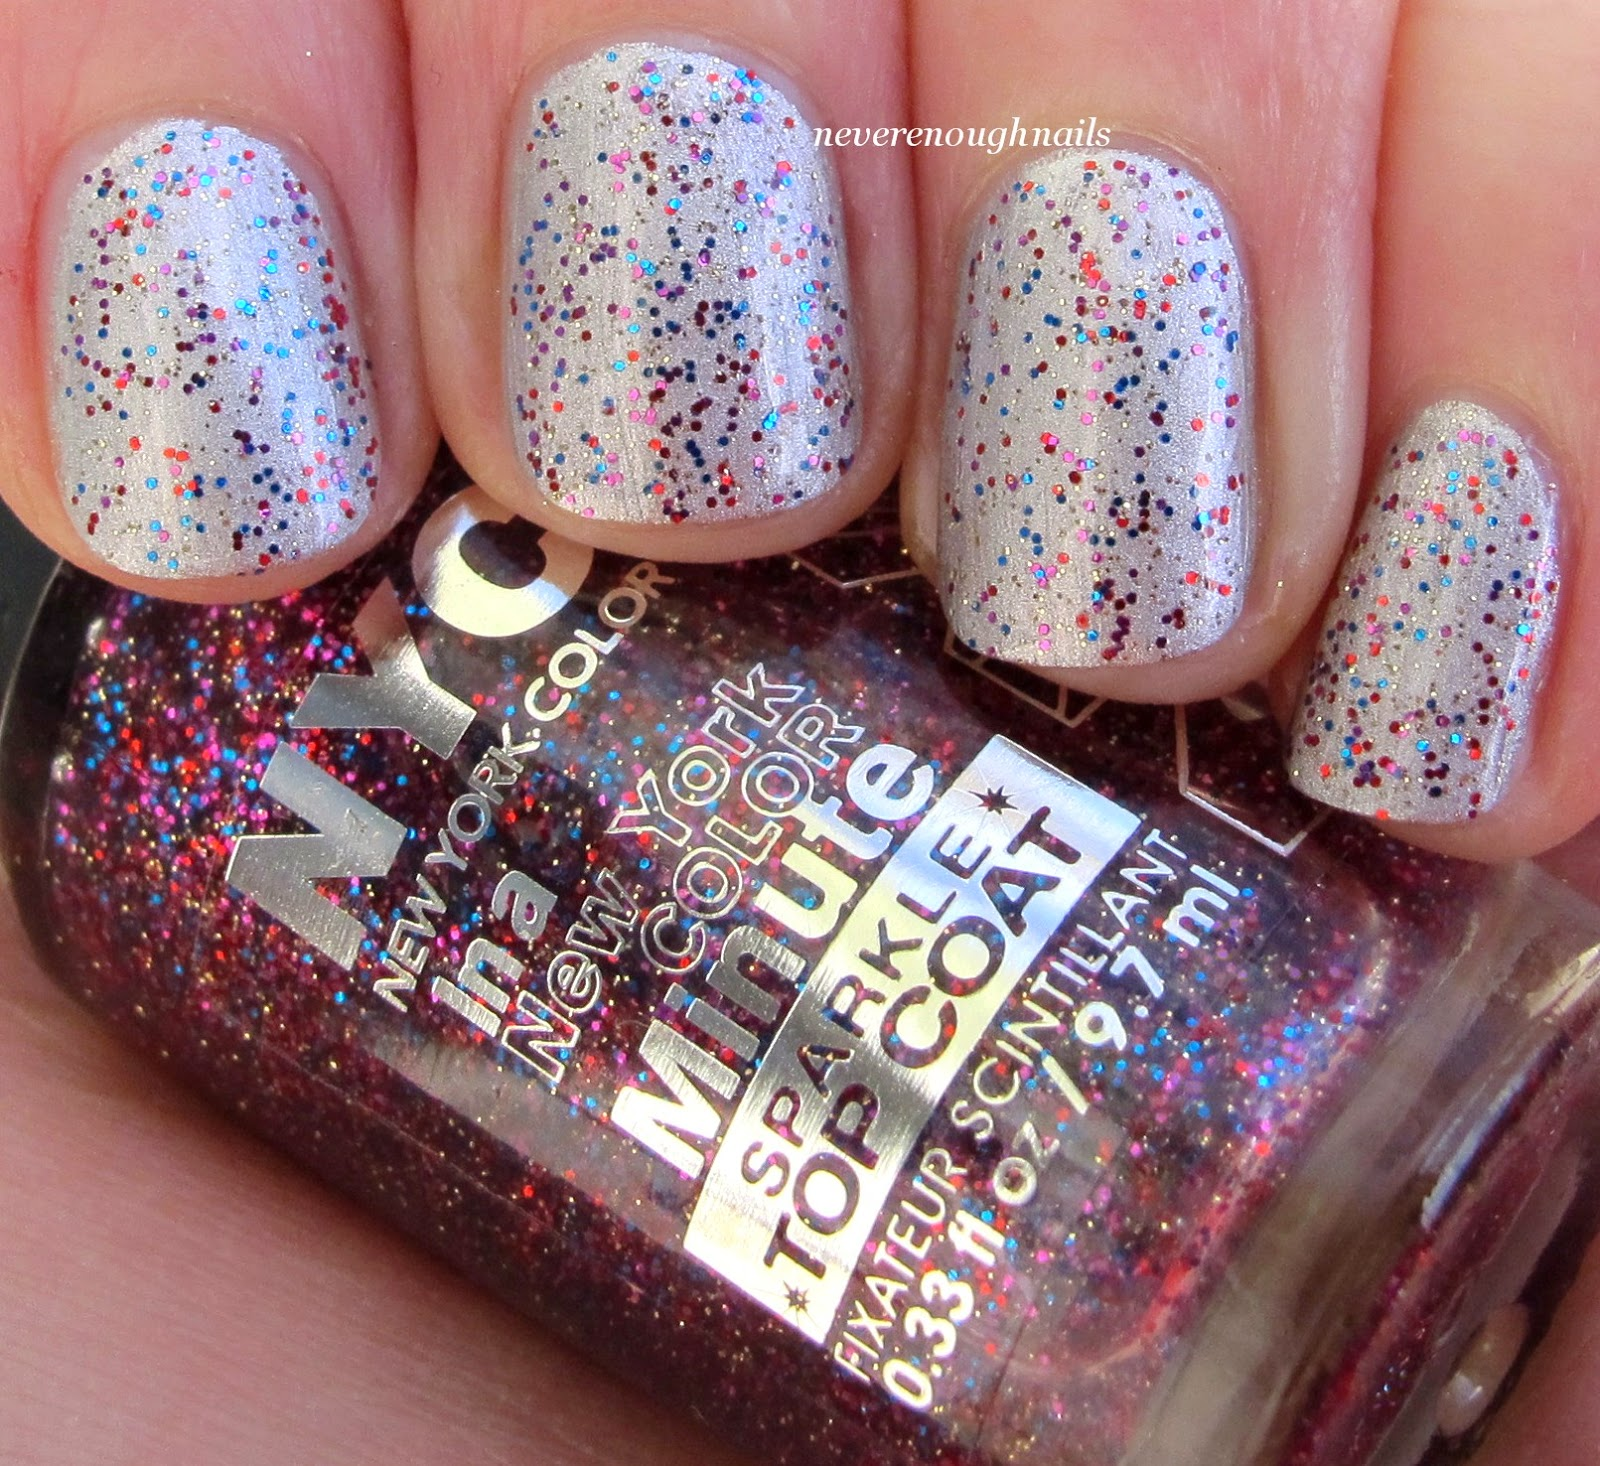 Never Enough Nails: NYC Big City Dazzle Sparkle Topcoat Swatches!